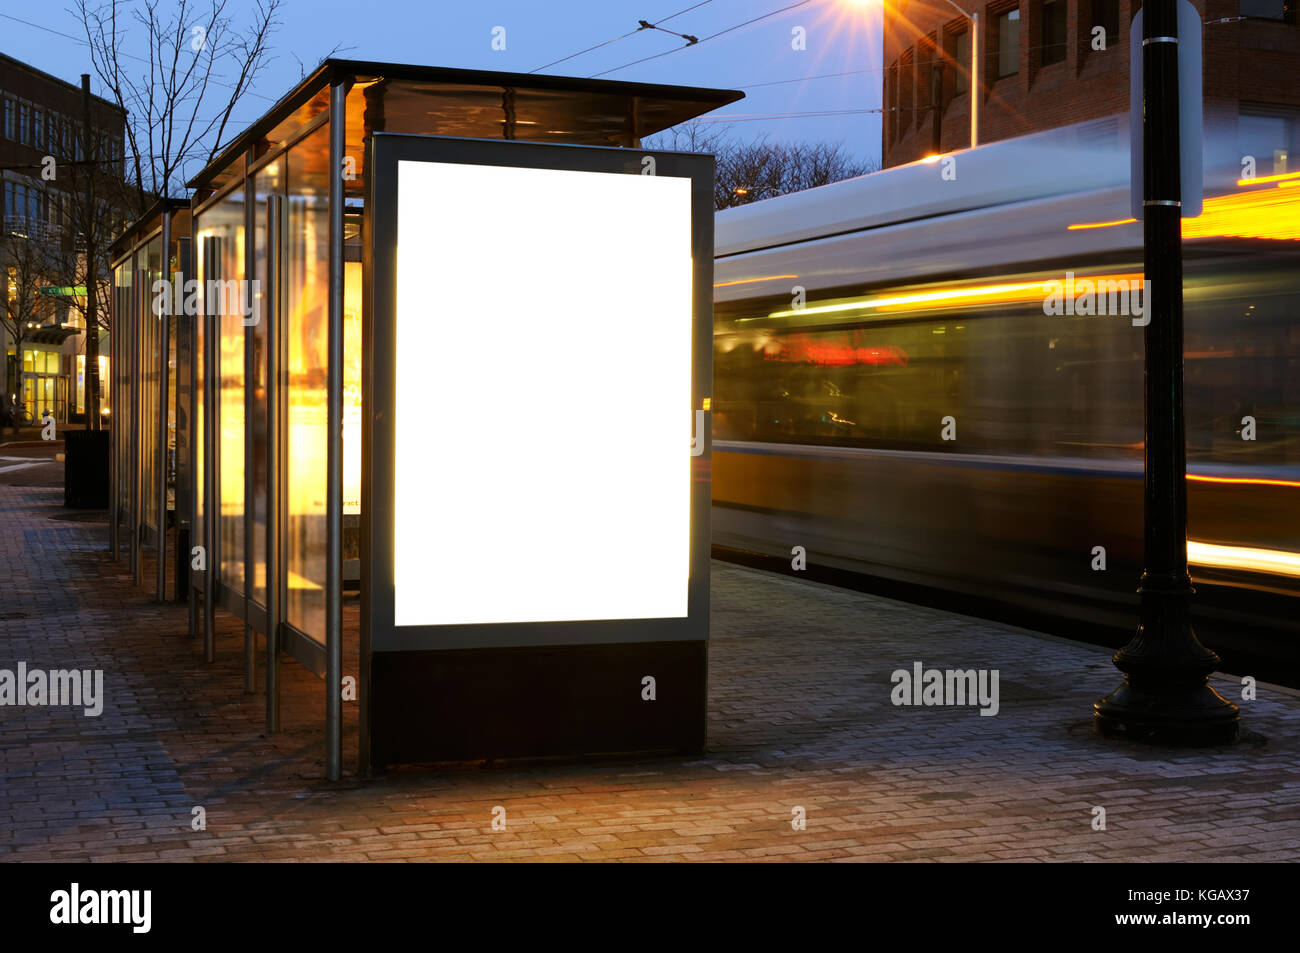 Blank billboard on bus shelter at night - Stock Image & Bus Shelter Poster Stock Photos u0026 Bus Shelter Poster Stock Images ...